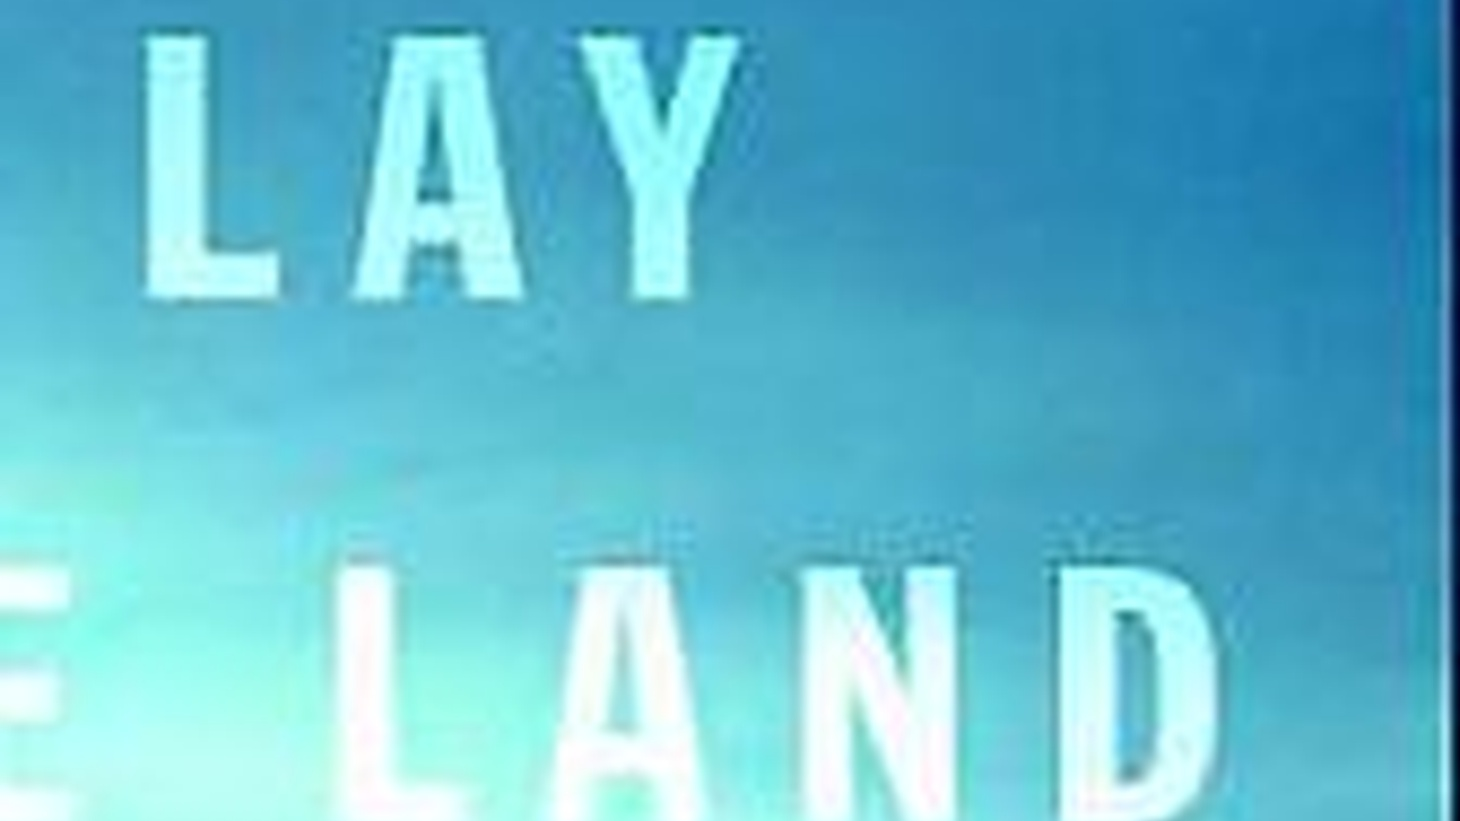 The Lay of the Land (Knopf) is Richard Ford's third novel about Frank Bascomb, his sportswriter-turned-realtor.